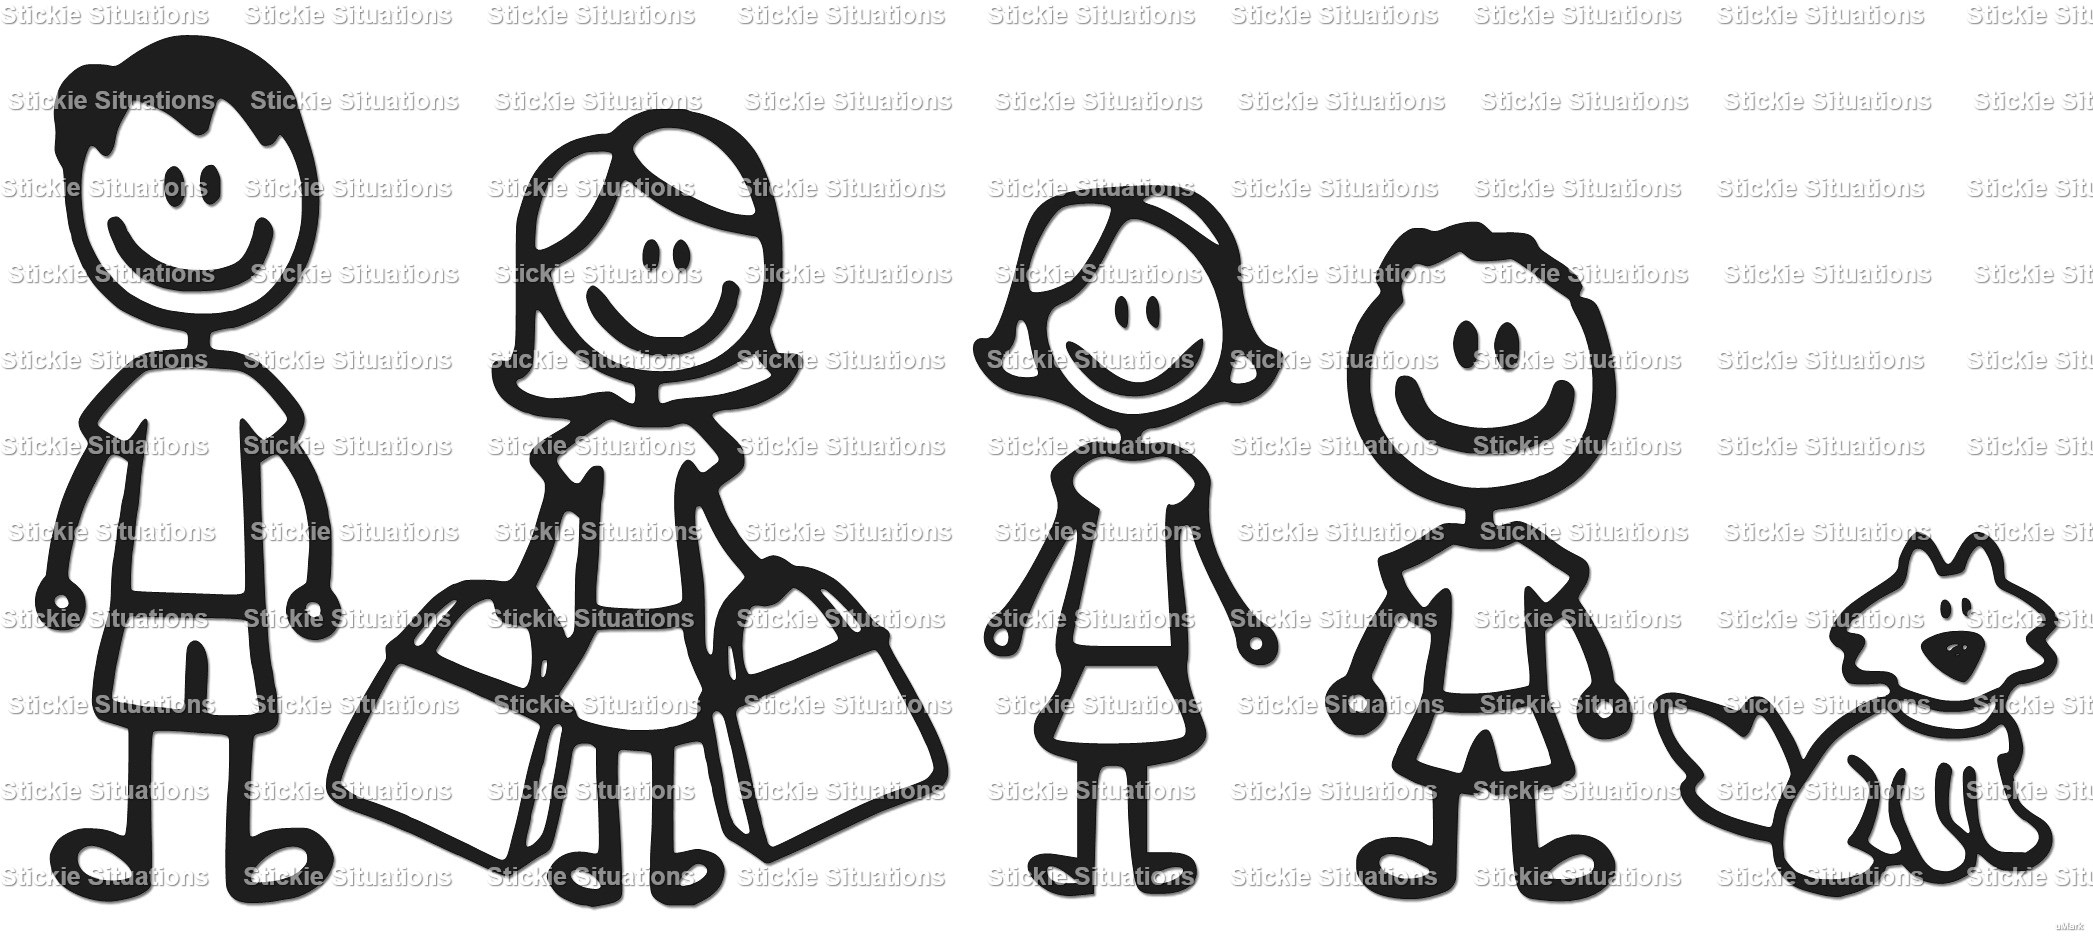 stick family car decal clipart panda free clipart images rh clipartpanda com stick figure family clipart Stick Figure Family of 5